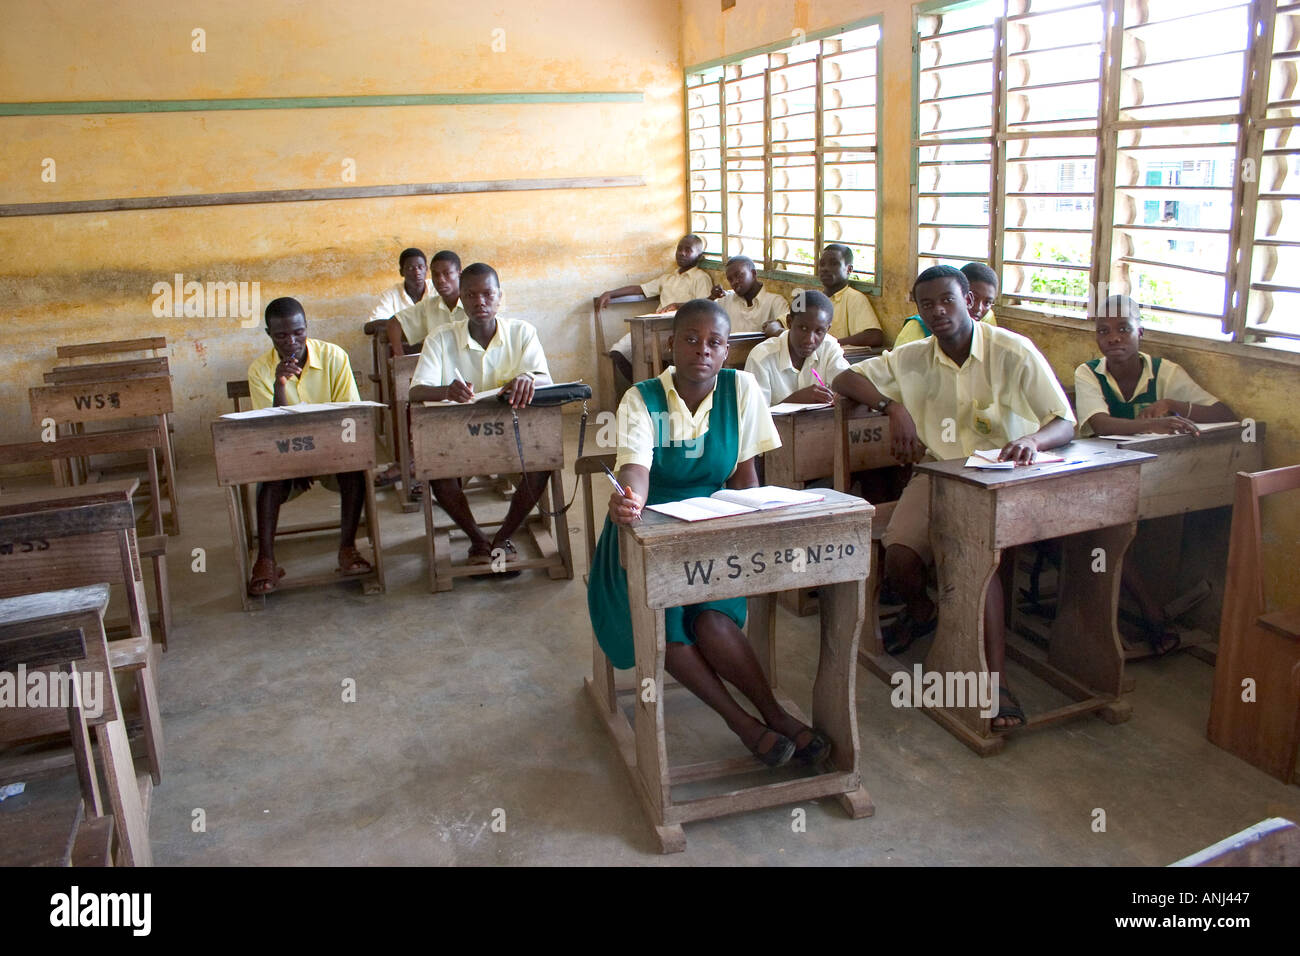 Class of students in a secondary school in Ghana - Stock Image